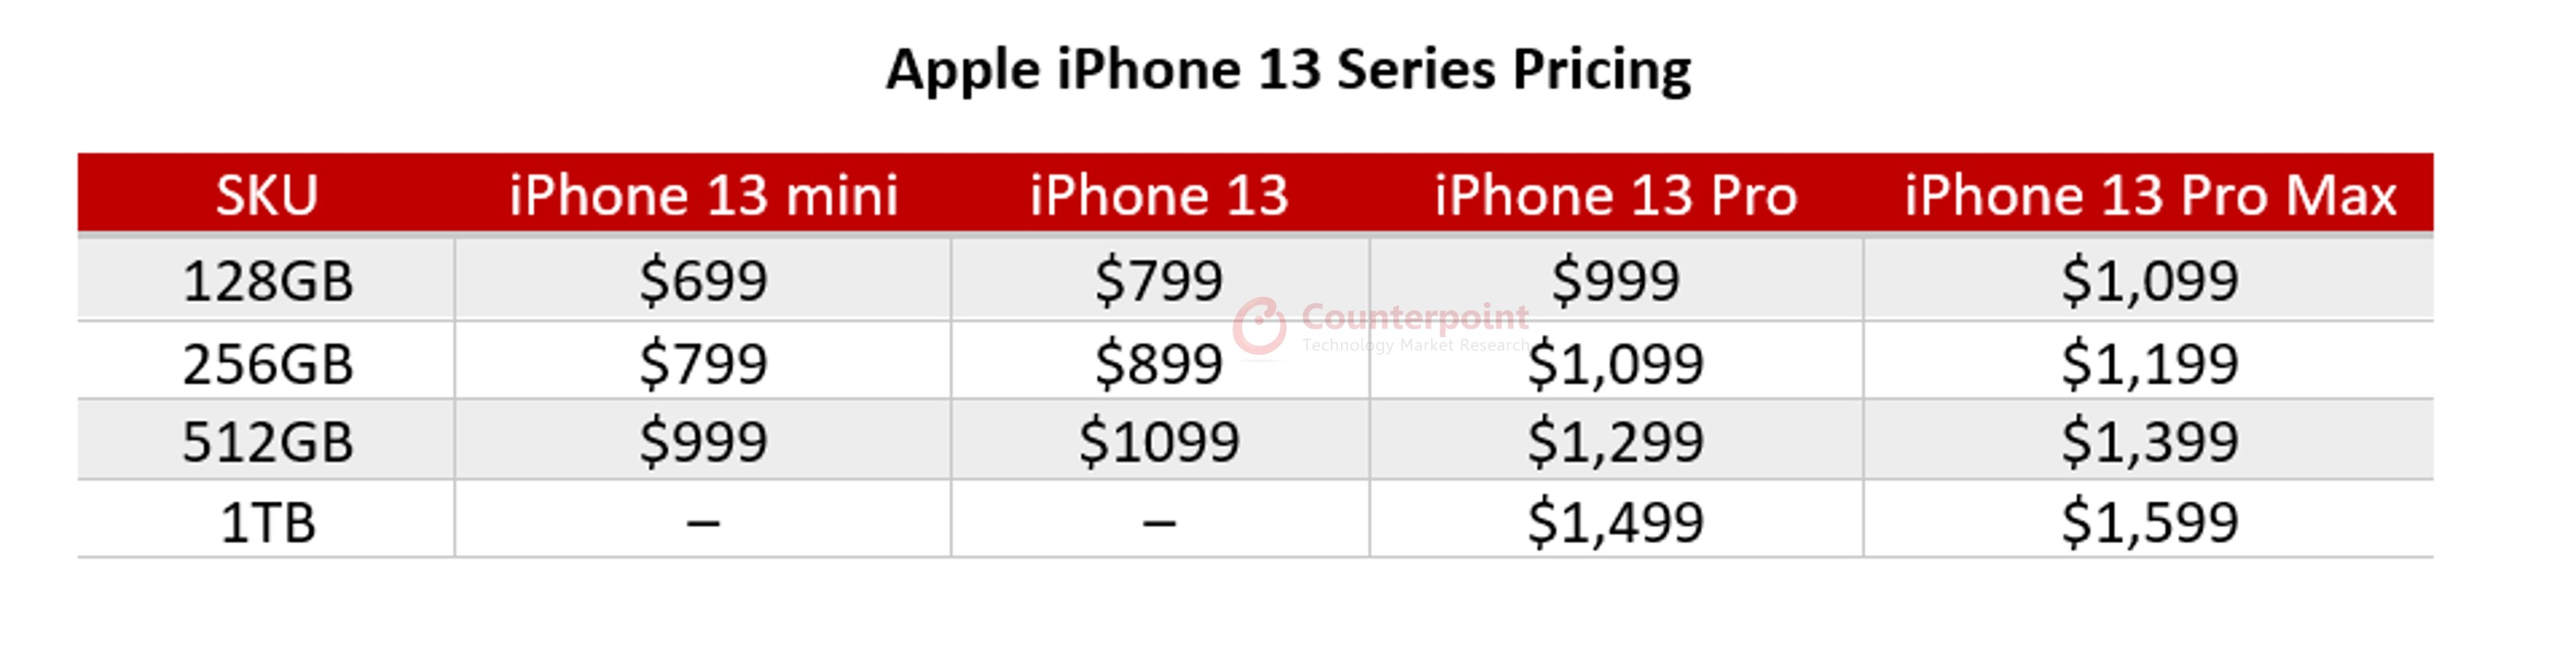 counterpoint iPhone 13 pricing